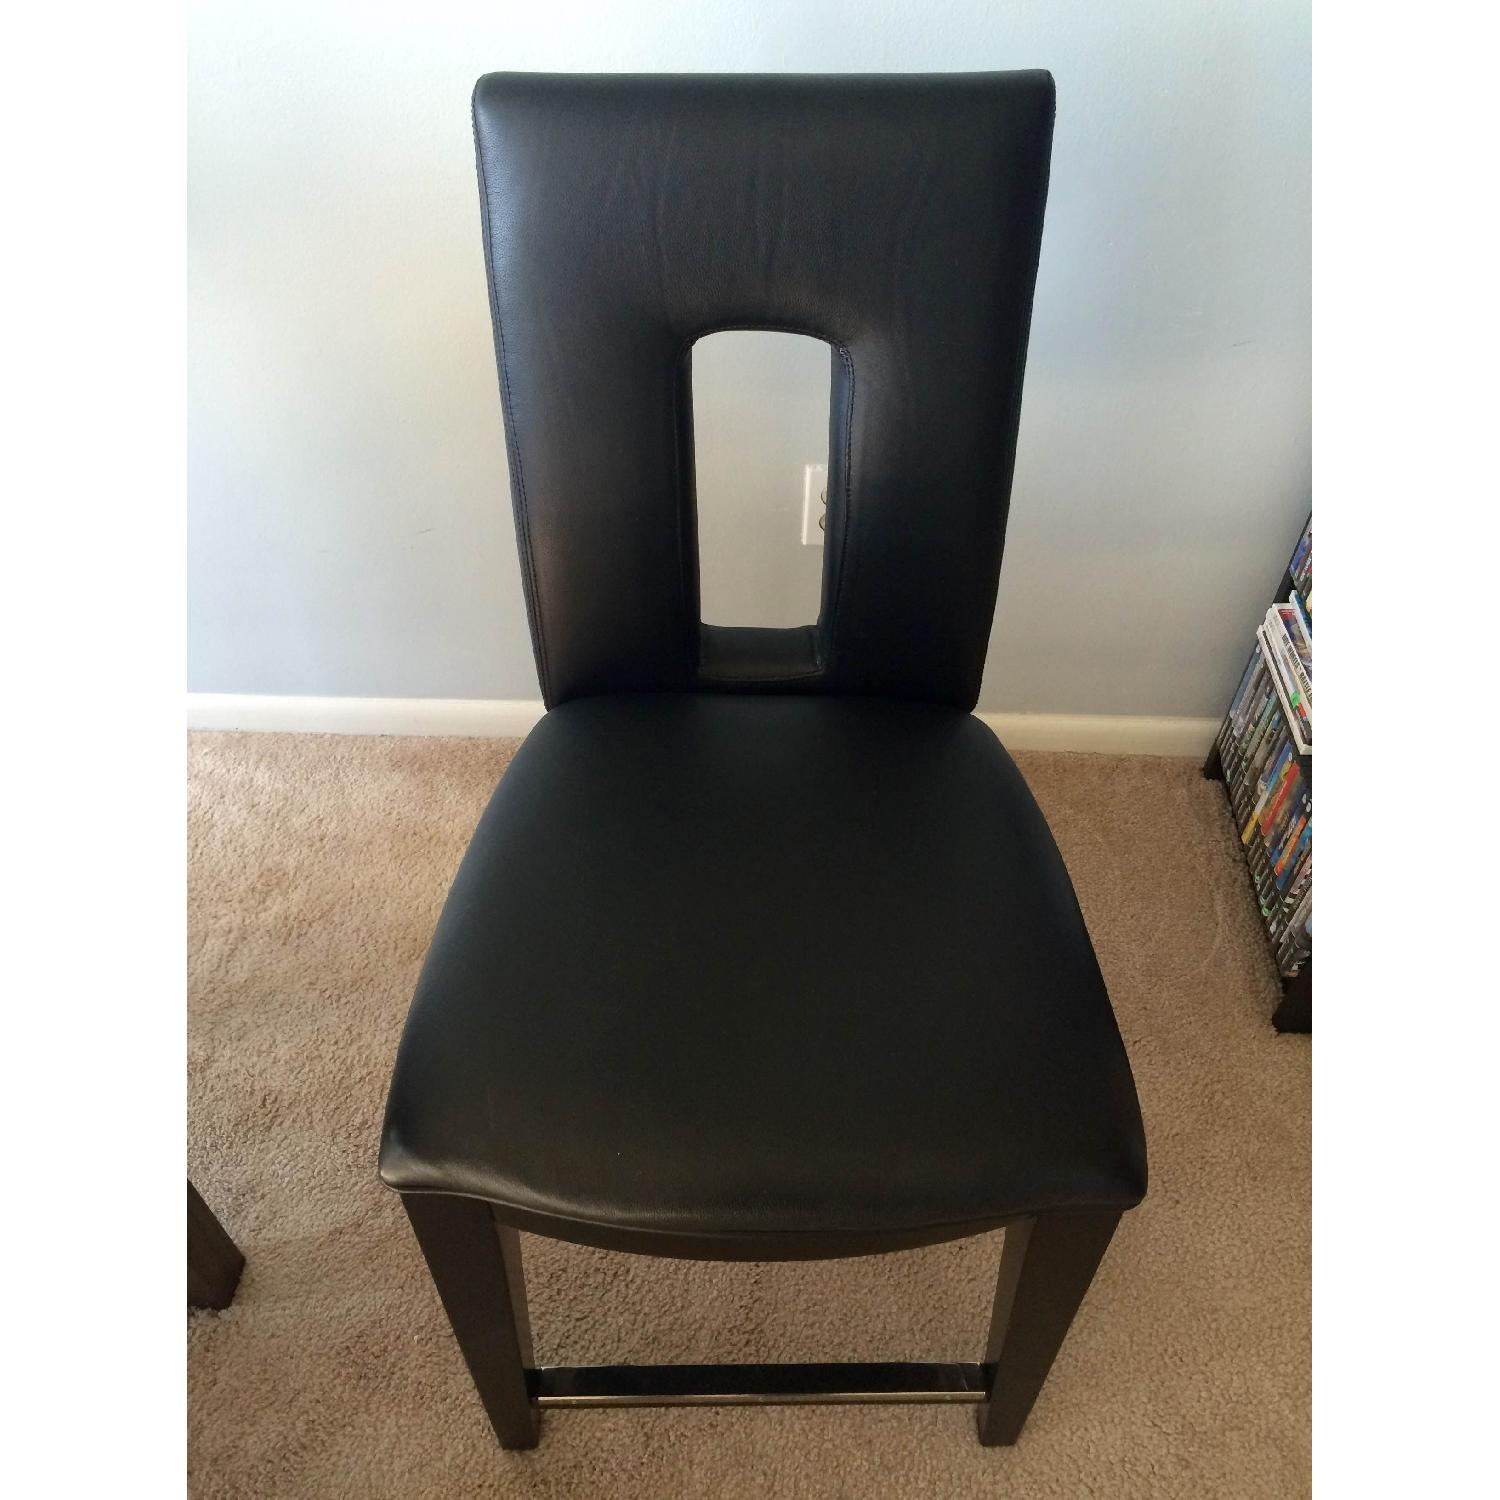 Broyhill Italian Leather Counter-Height Chairs - image-1